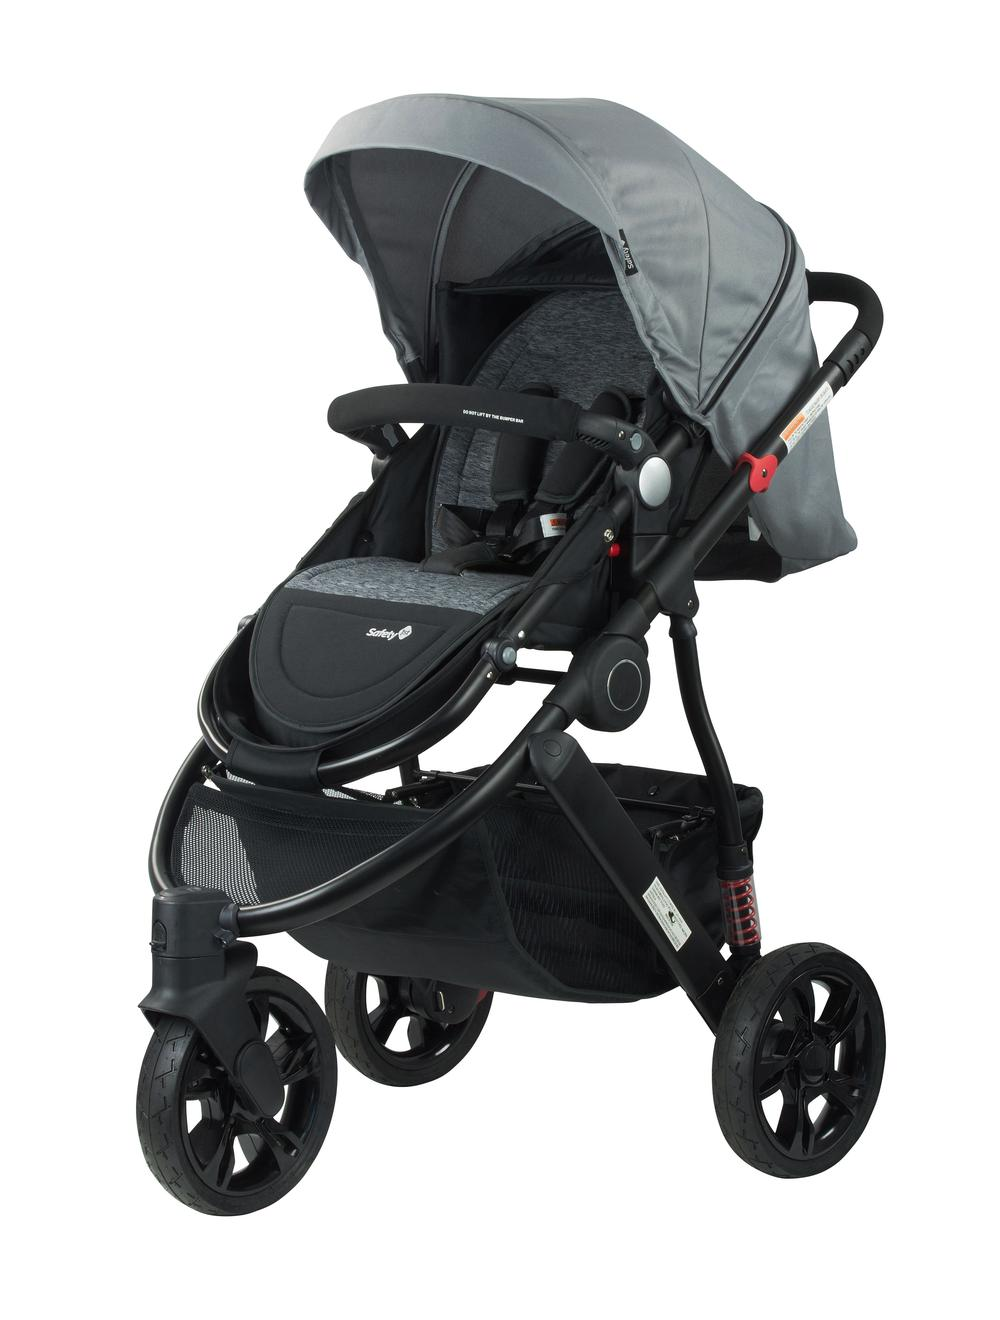 Newborn Stroller Nz Safety 1st Wanderer X 3 Wheel Stroller Dusk Grey Marle